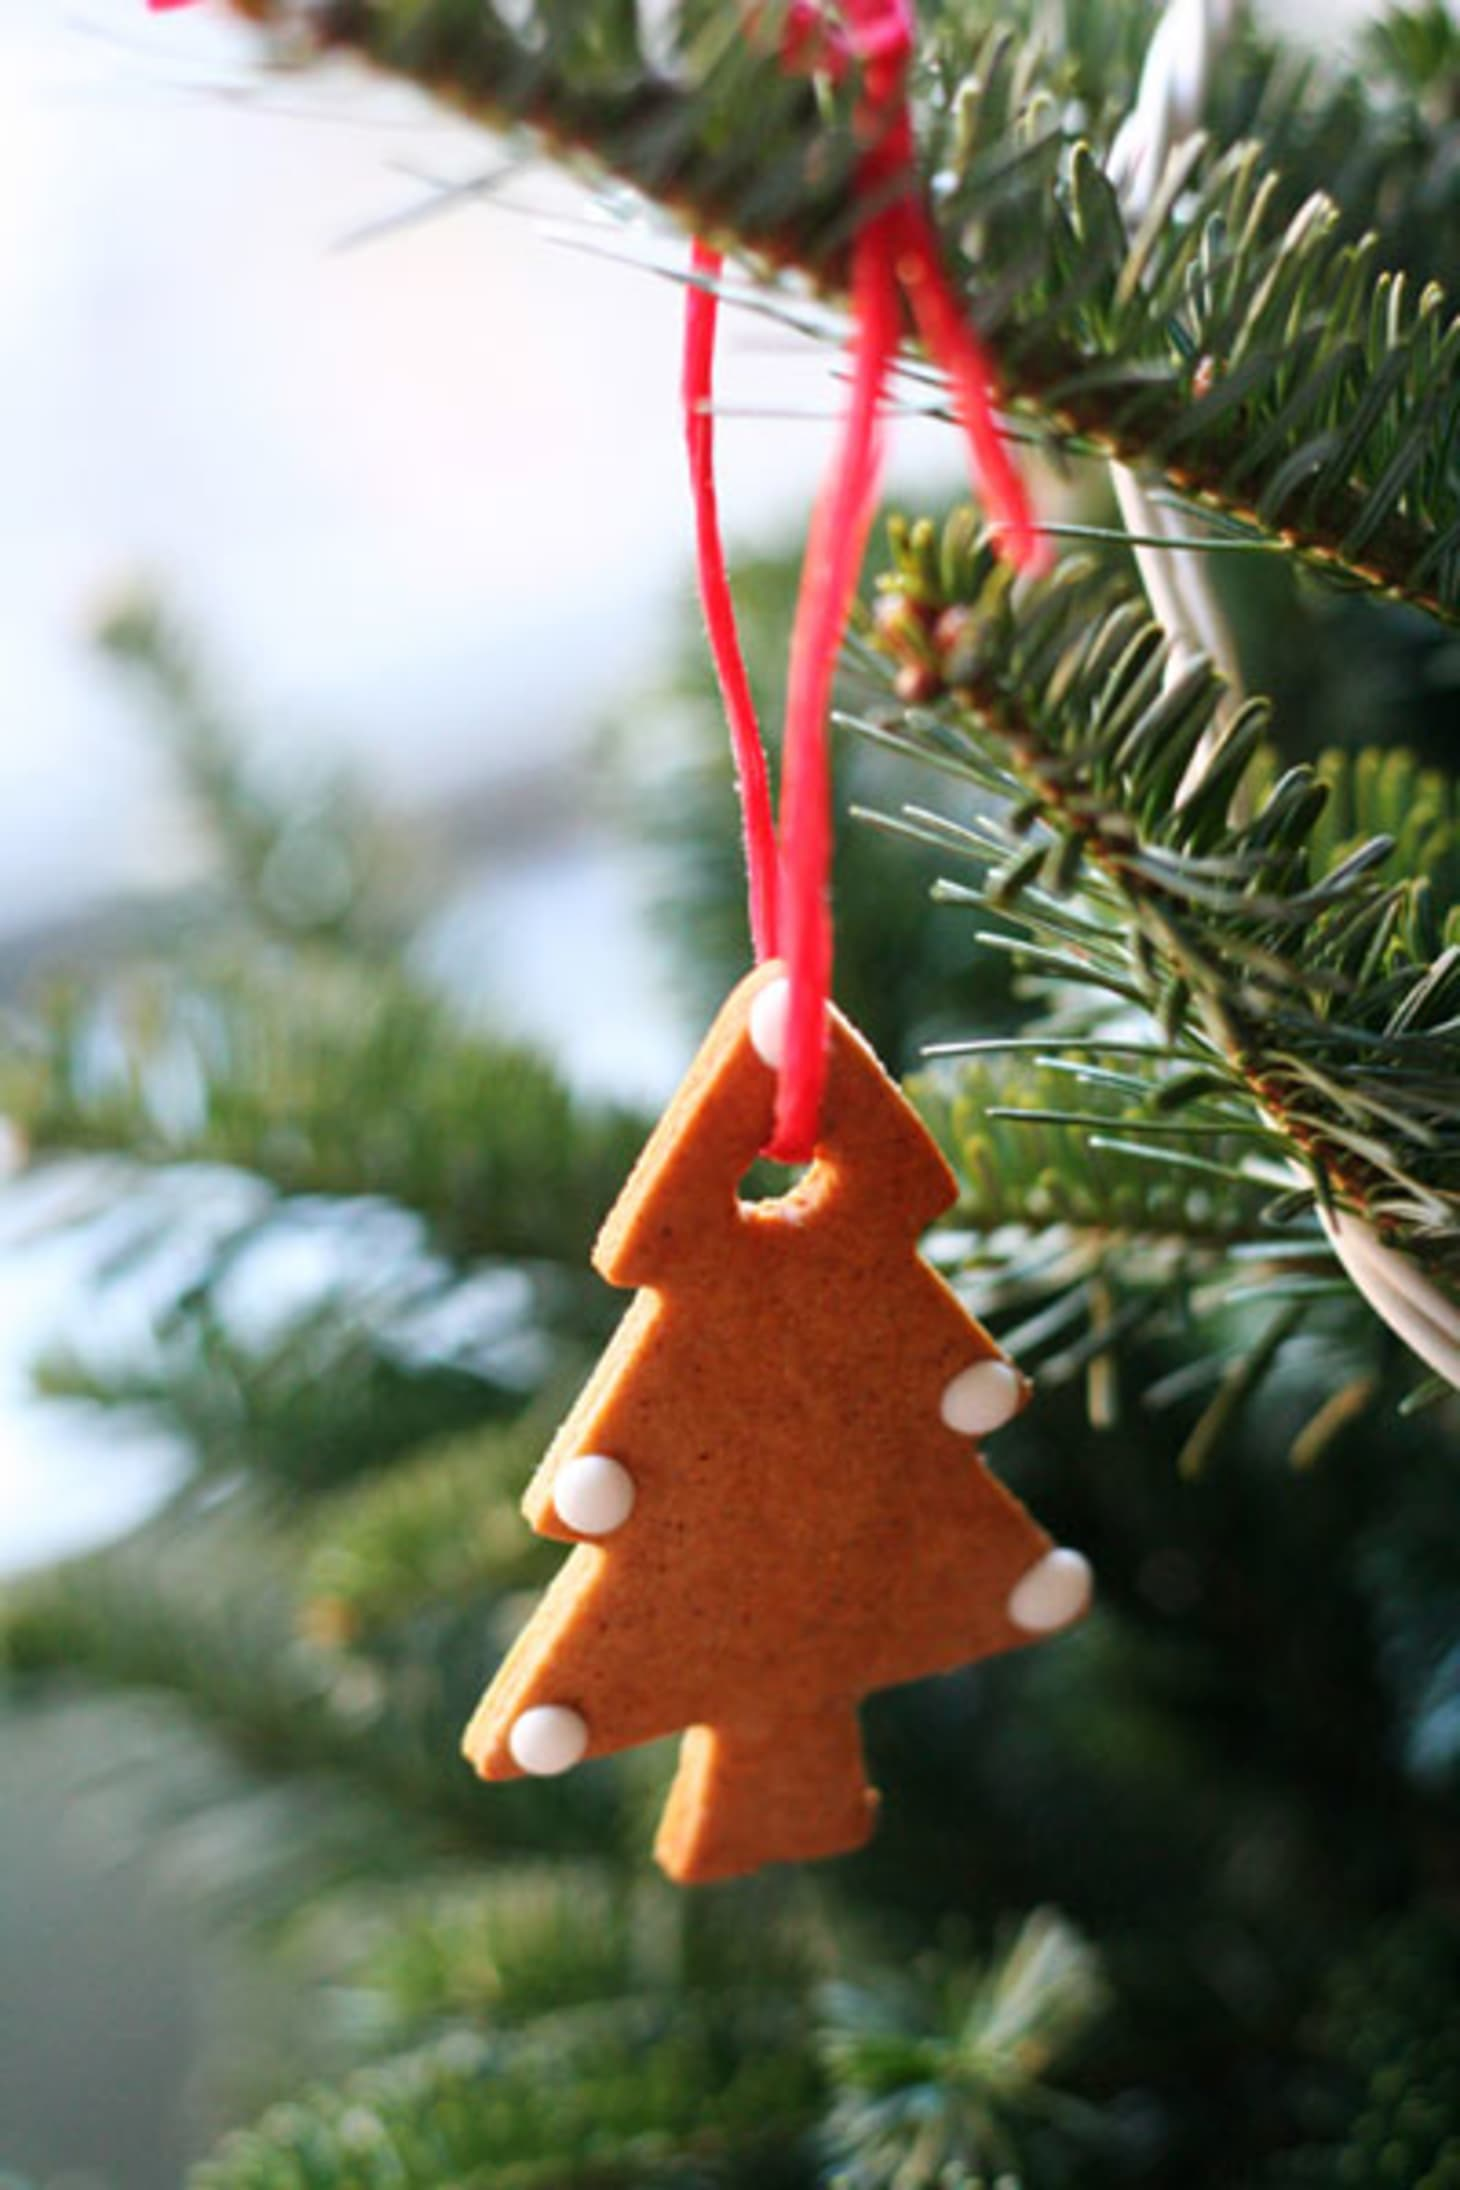 Gingerbread Christmas Tree.How To Make Gingerbread Christmas Tree Ornaments Kitchn